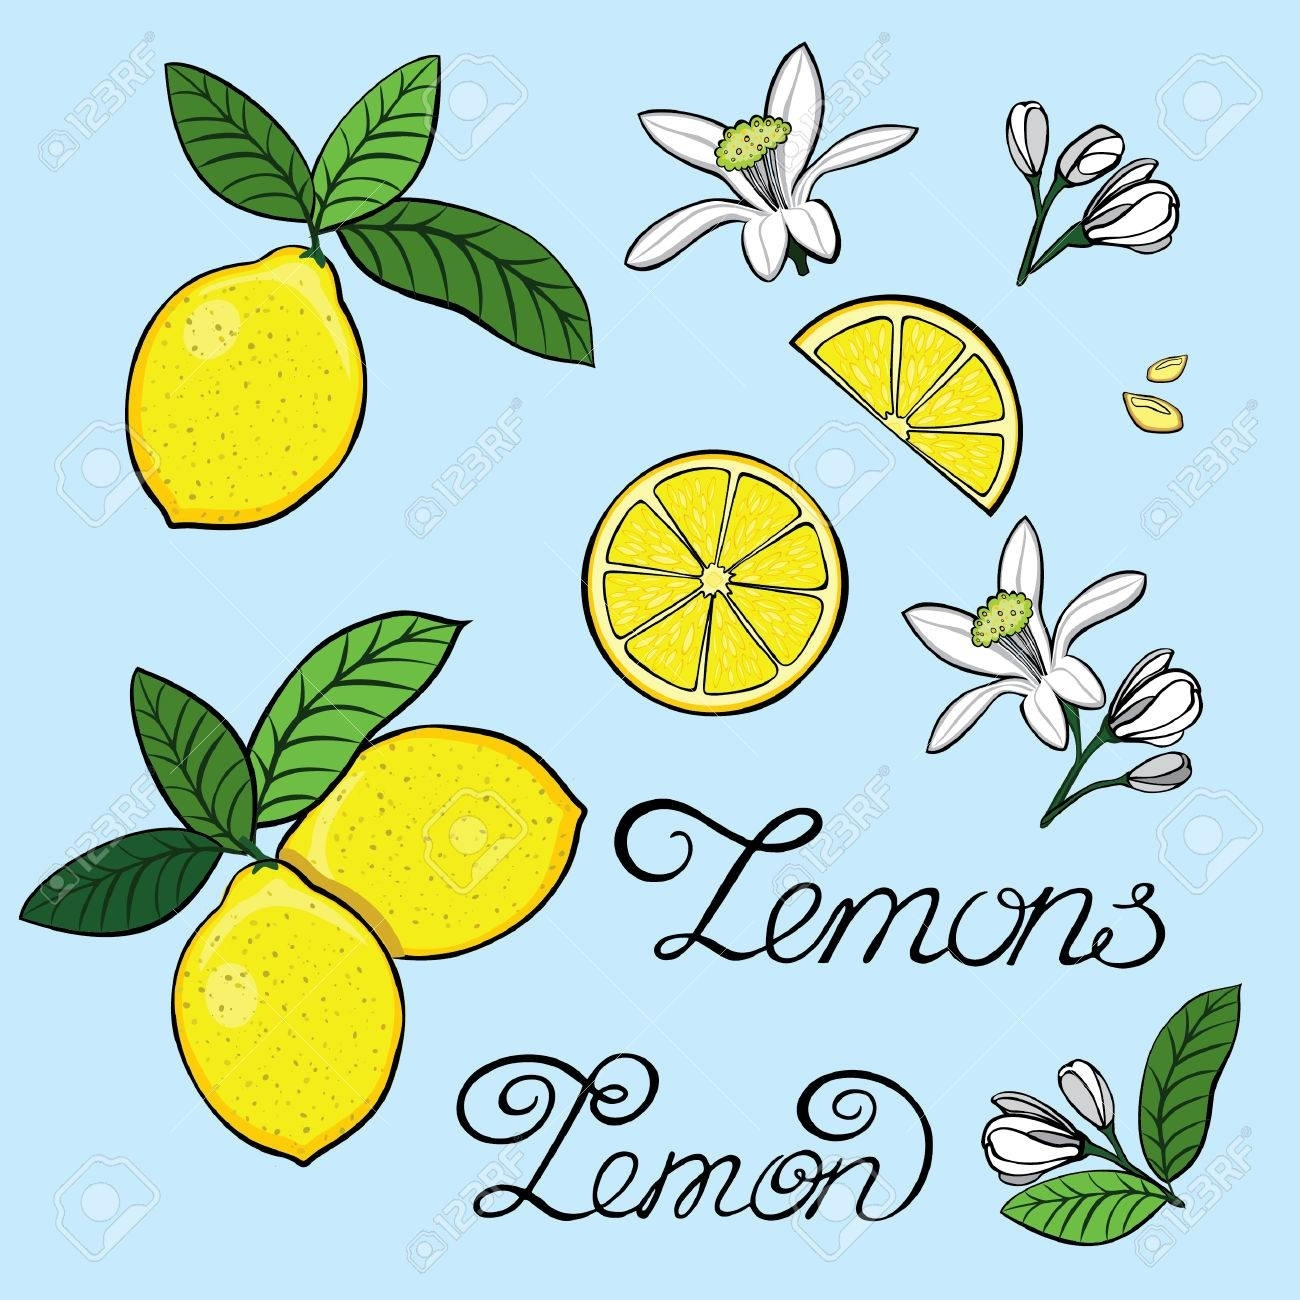 Elements For The Design Of A Lemon, Lemon Tree Flowers, Grain With Newest Lemon Wall Art (View 8 of 20)